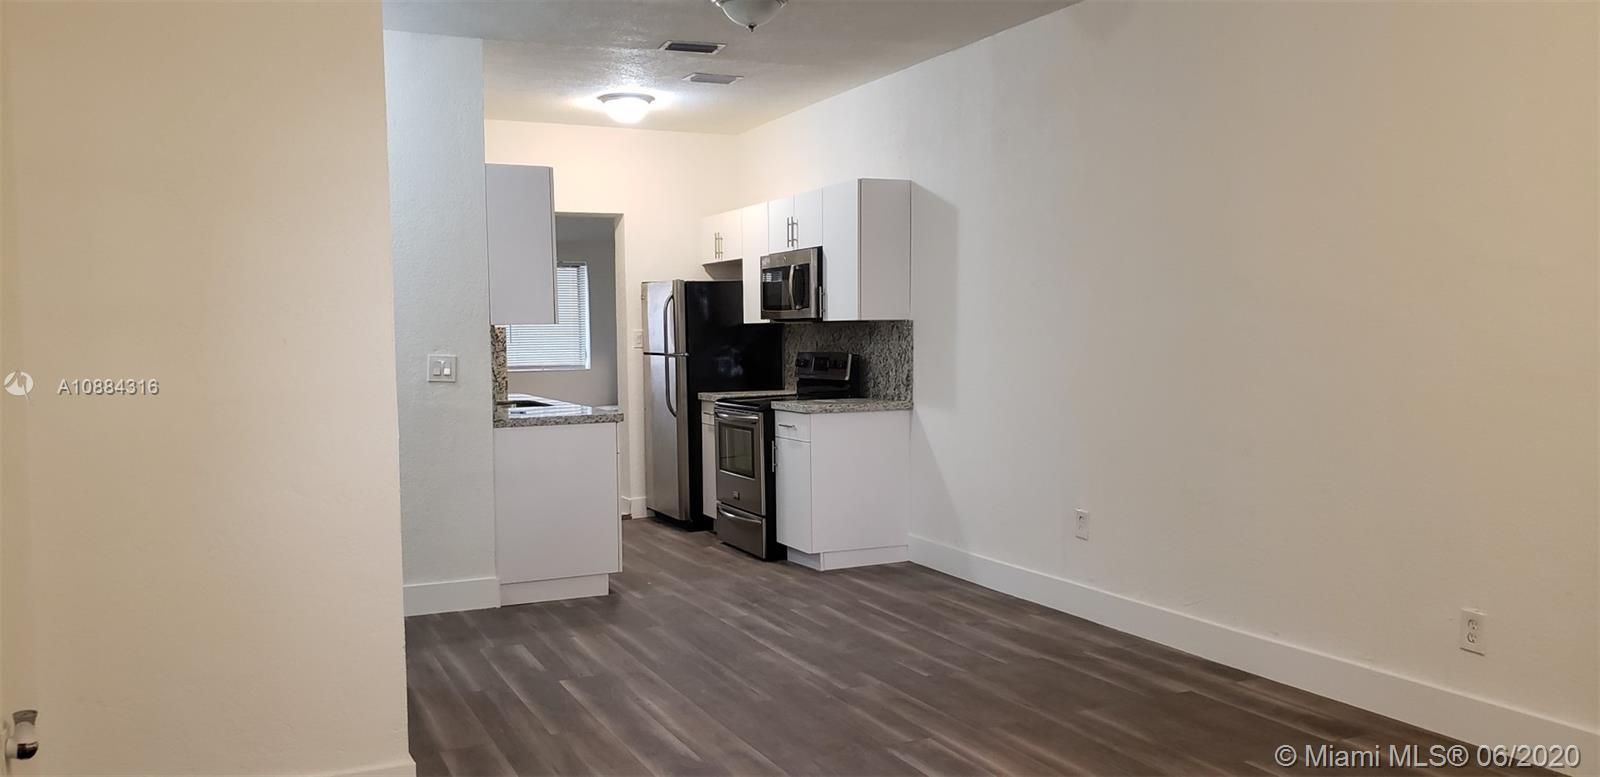 2600 32nd ave- miami-fl-33133-a10884316-Pic04